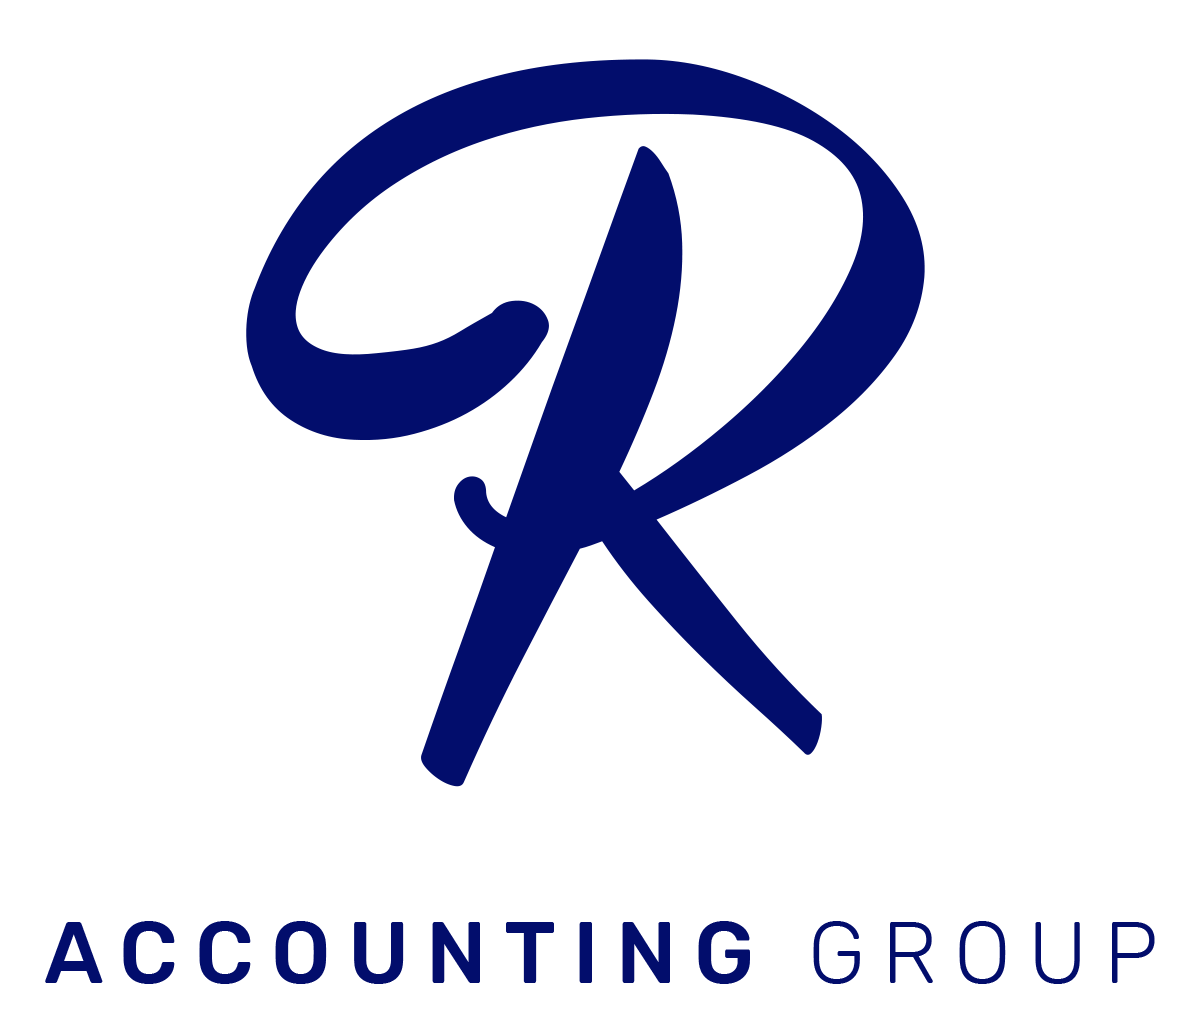 R Accounting Group - Accounting services and financial management for small business owners